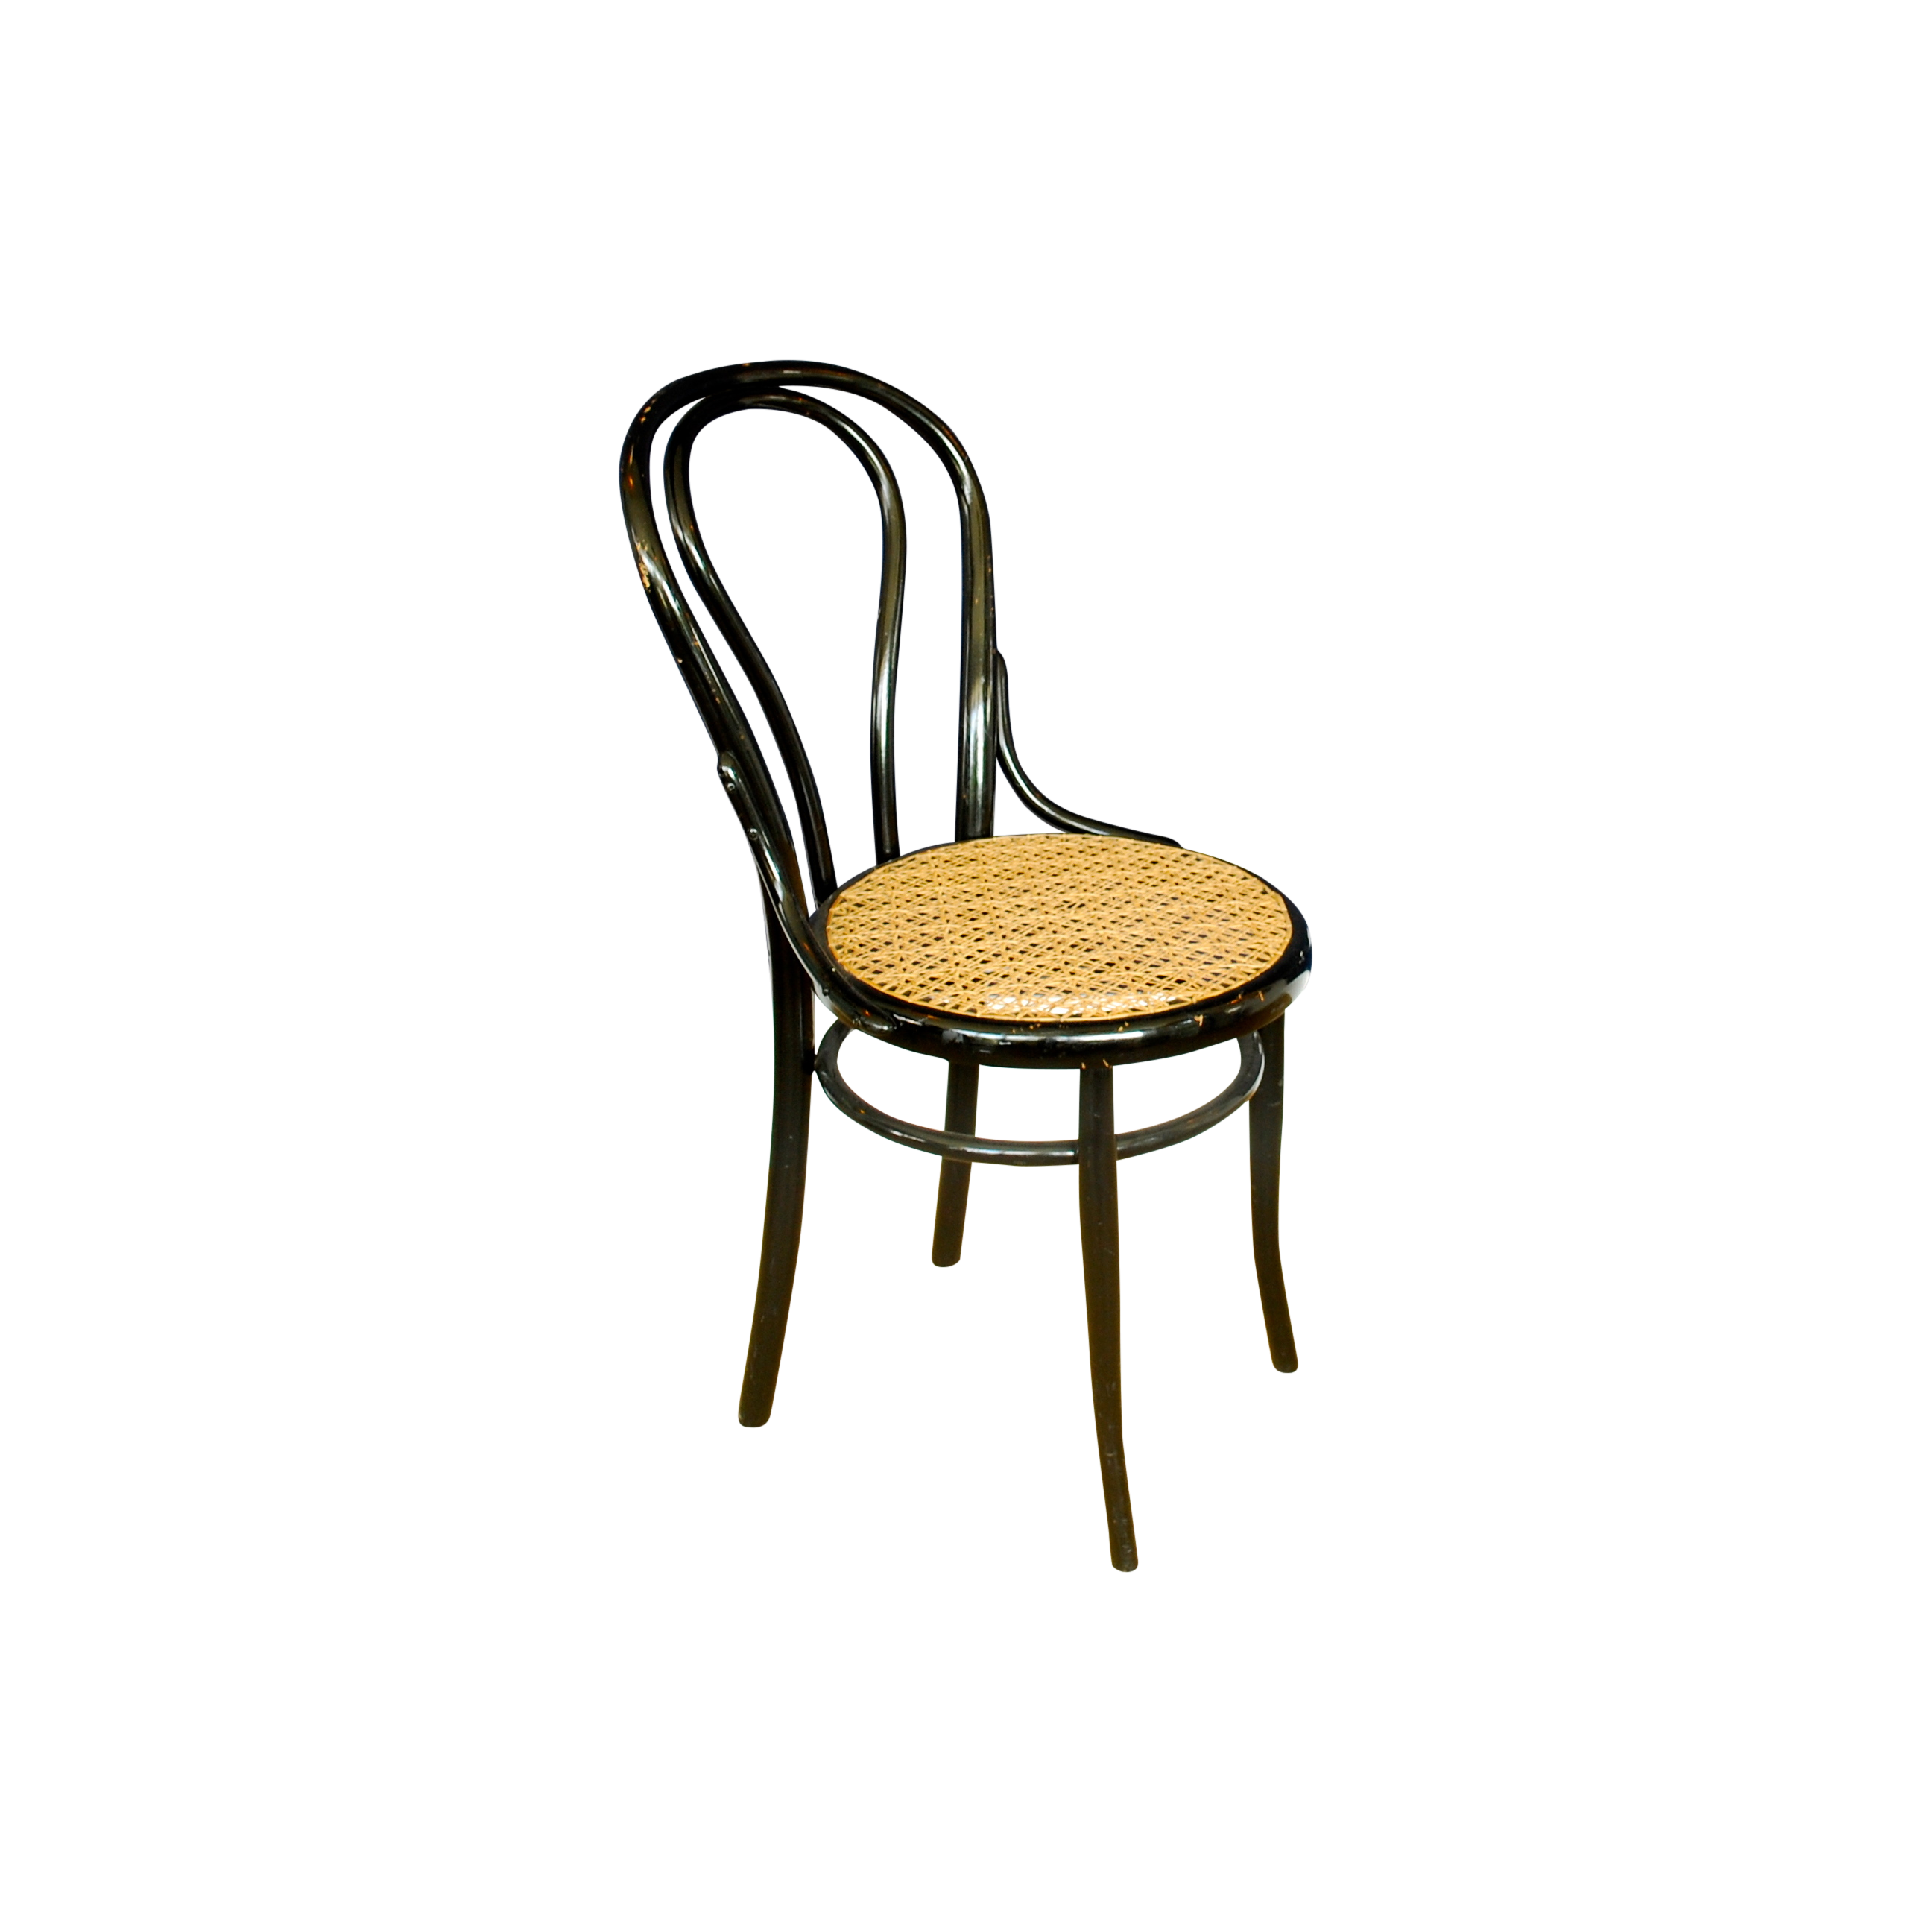 Bentwood Chair Cane Seat Replacement Chair Design Ideas